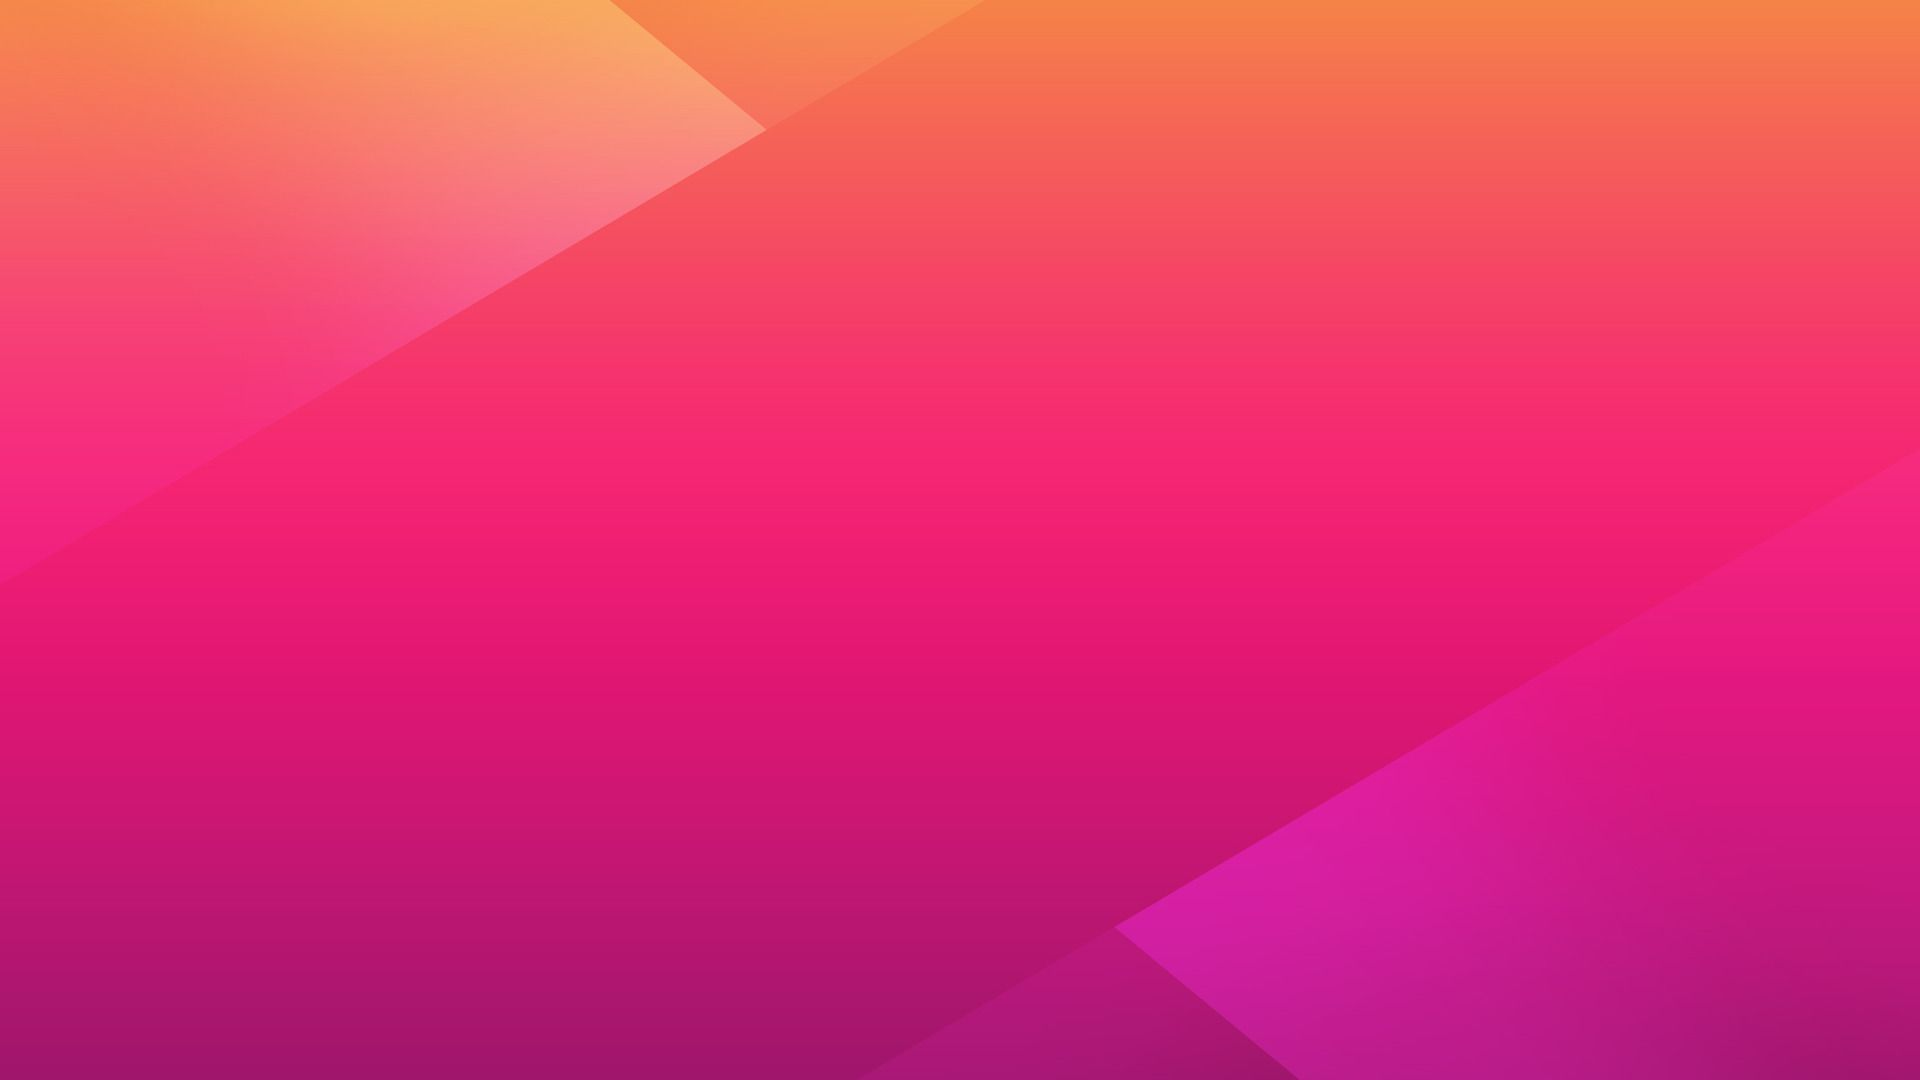 pink and orange background